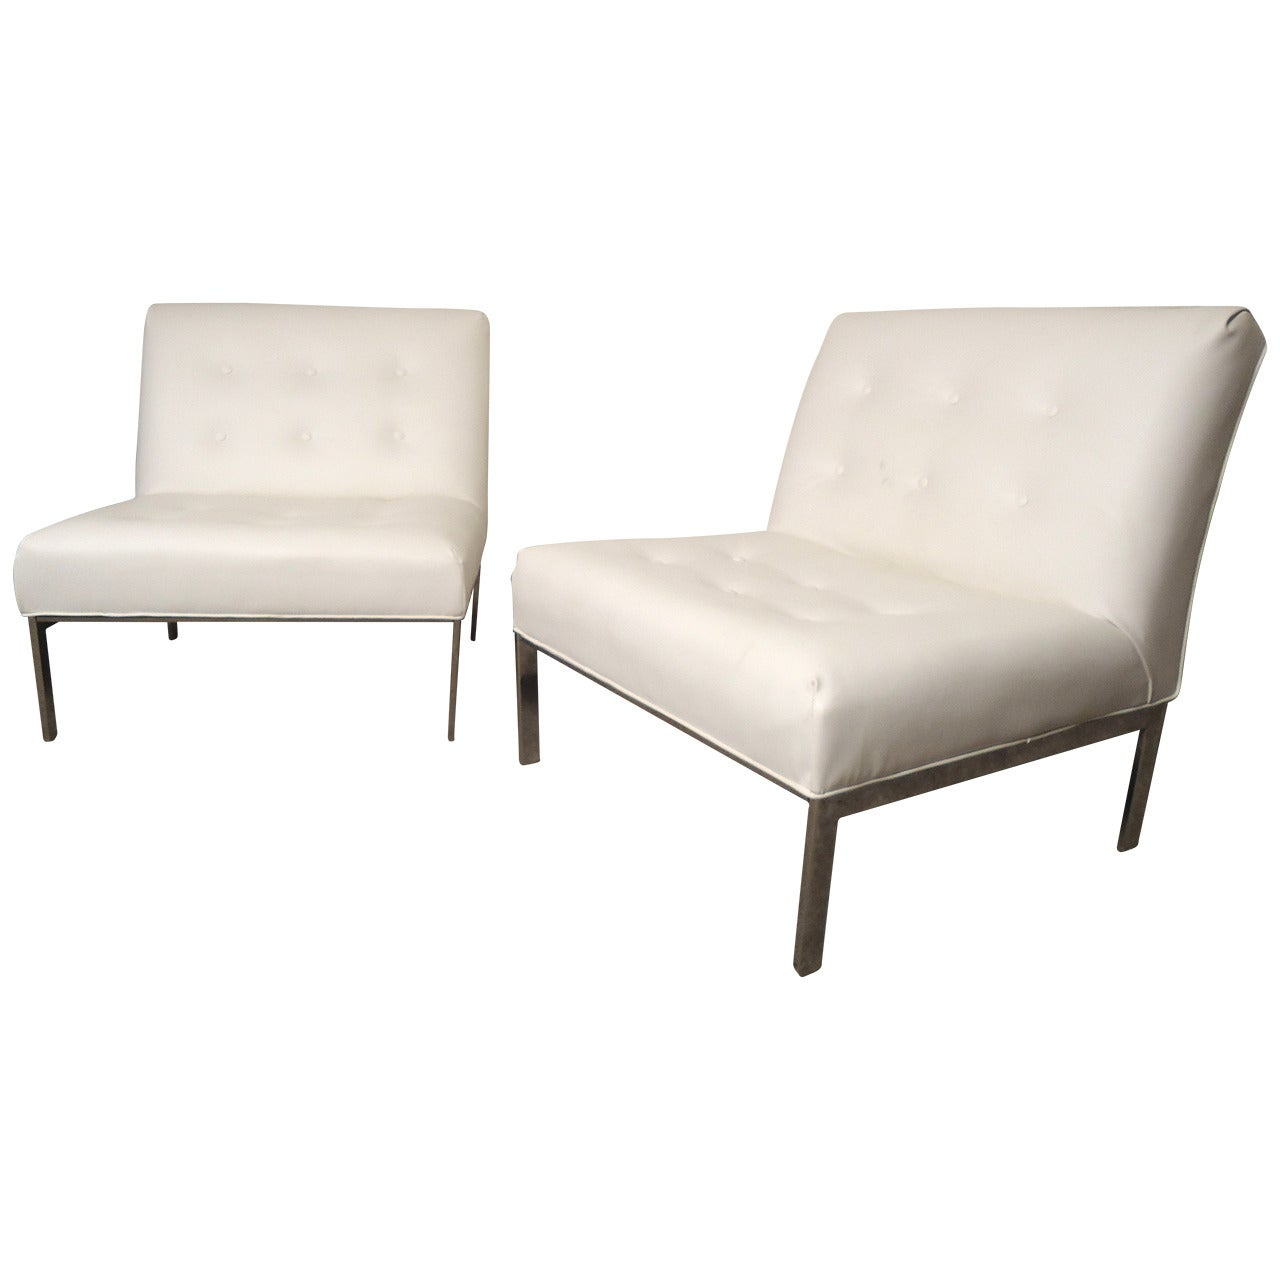 Recovered Milo Baughman Style Slipper Chairs